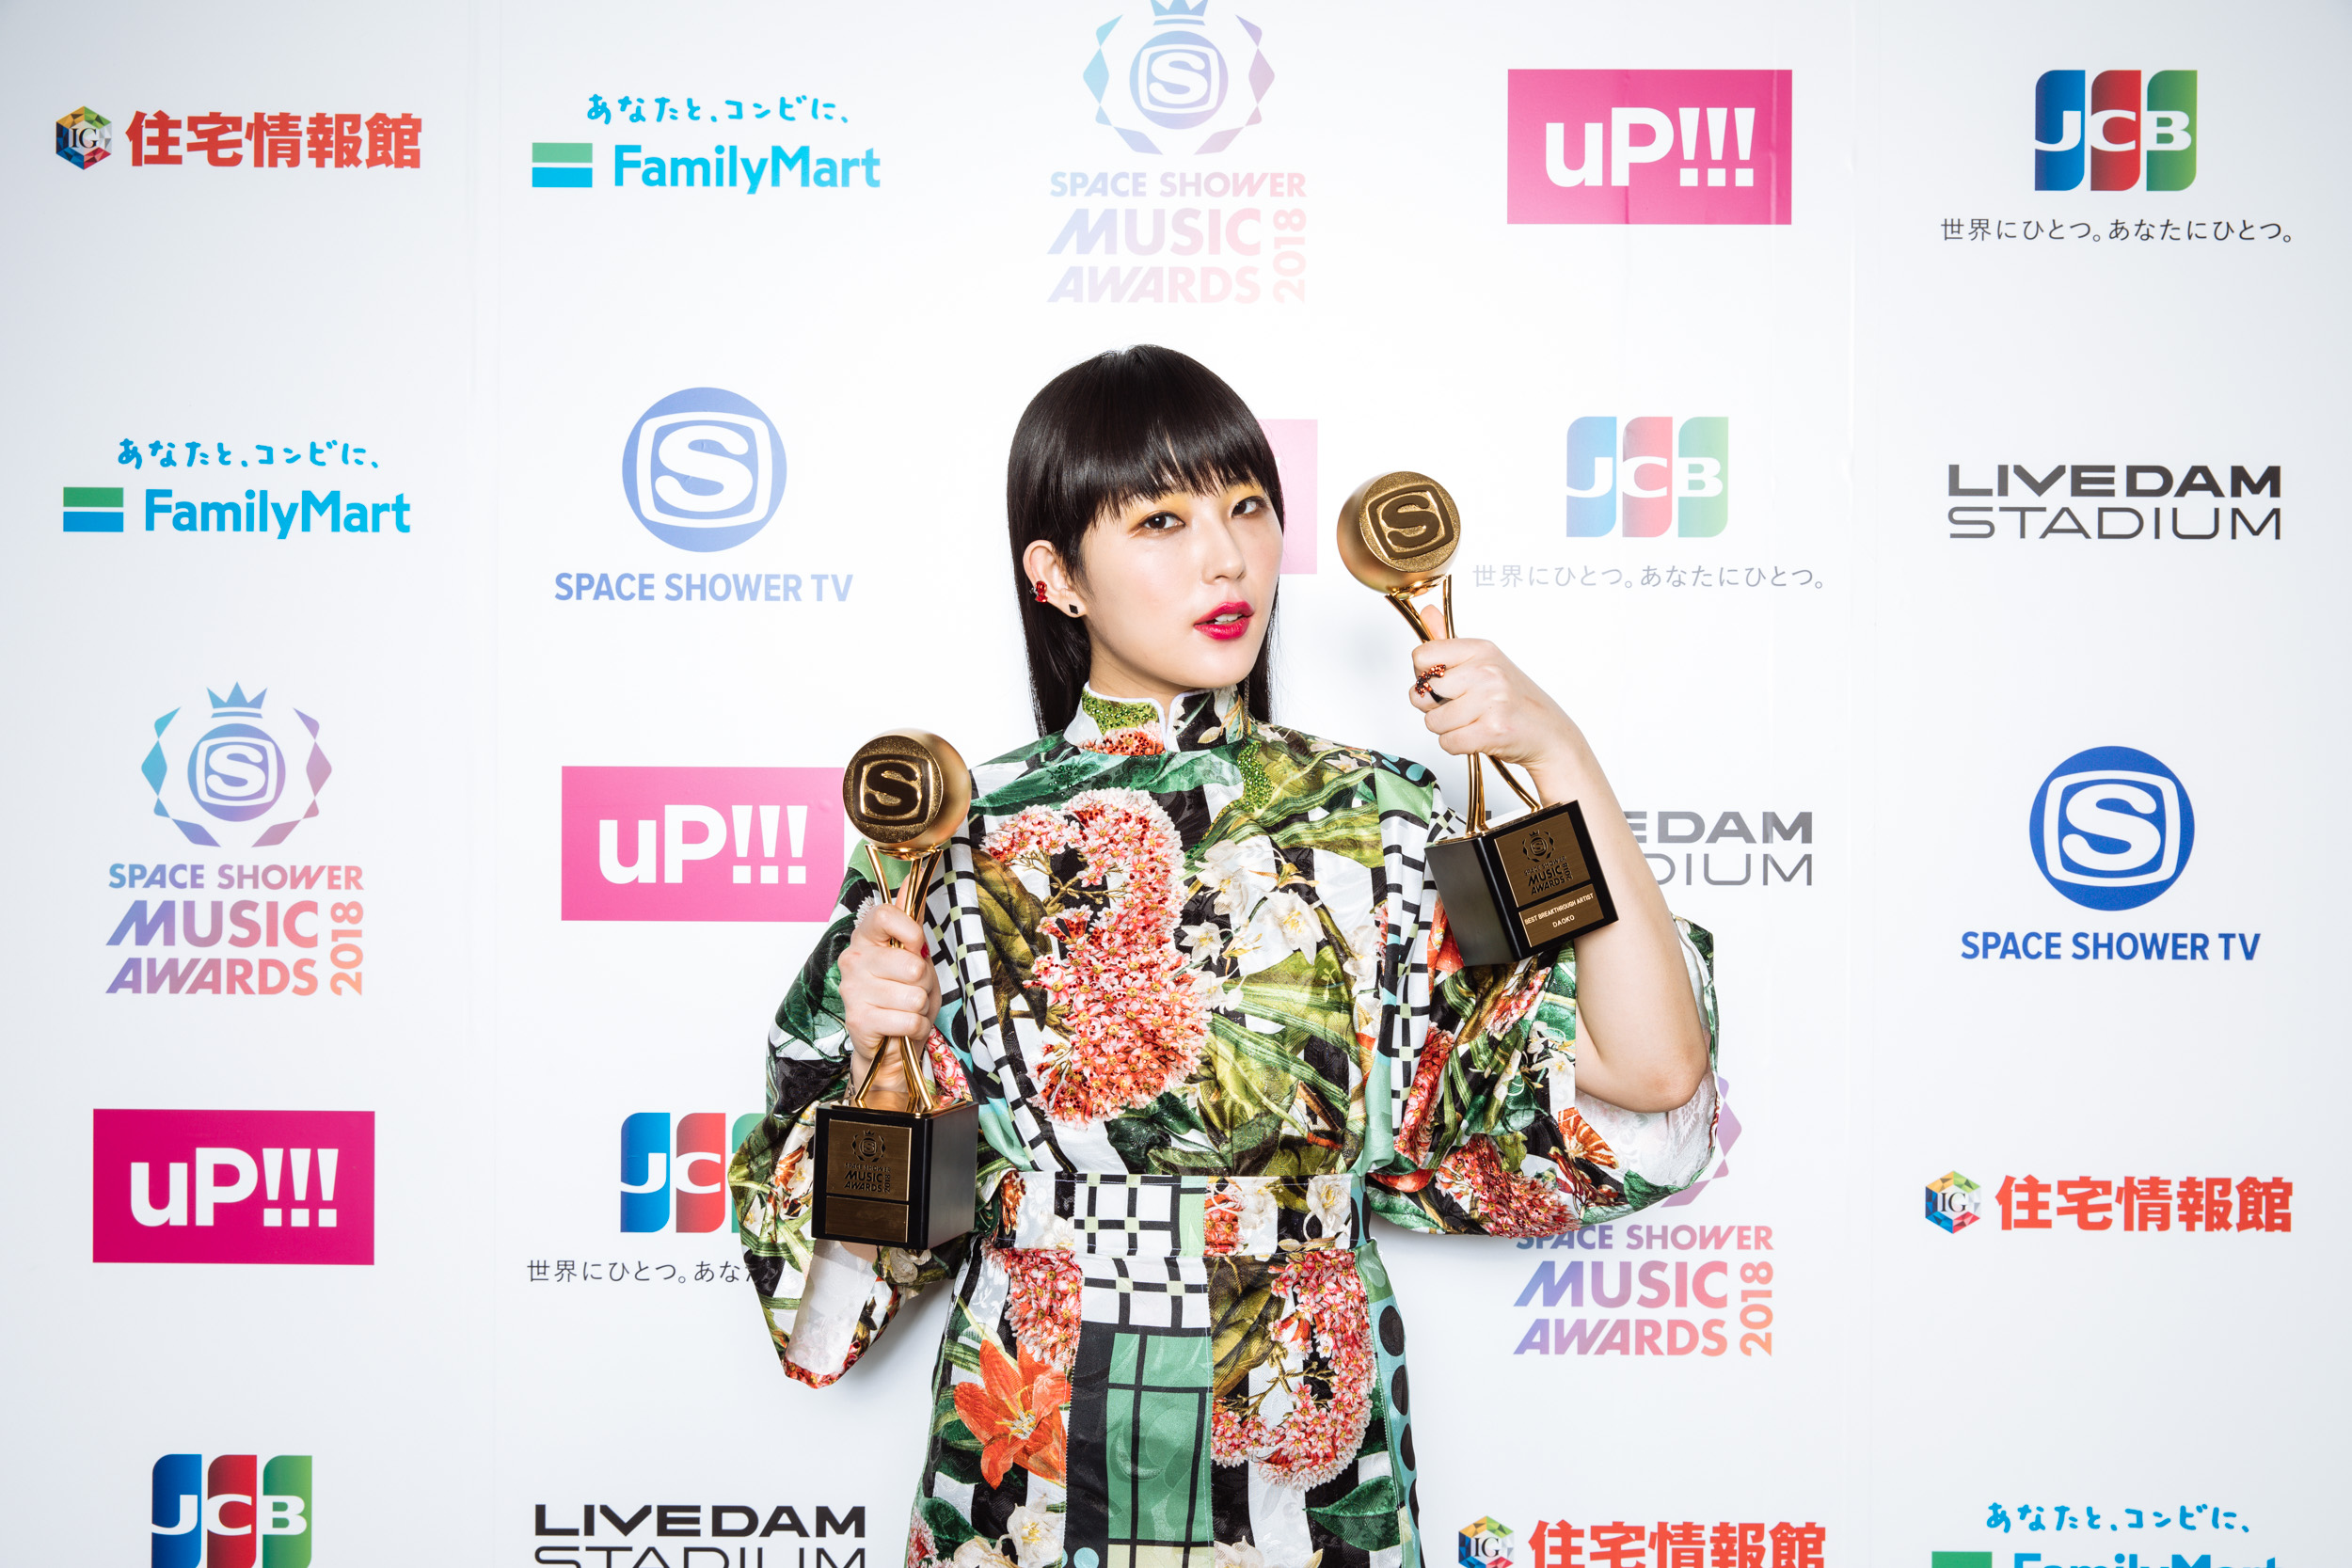 DAOKO - SPACE SHOWER MUSIC AWARDS 2018